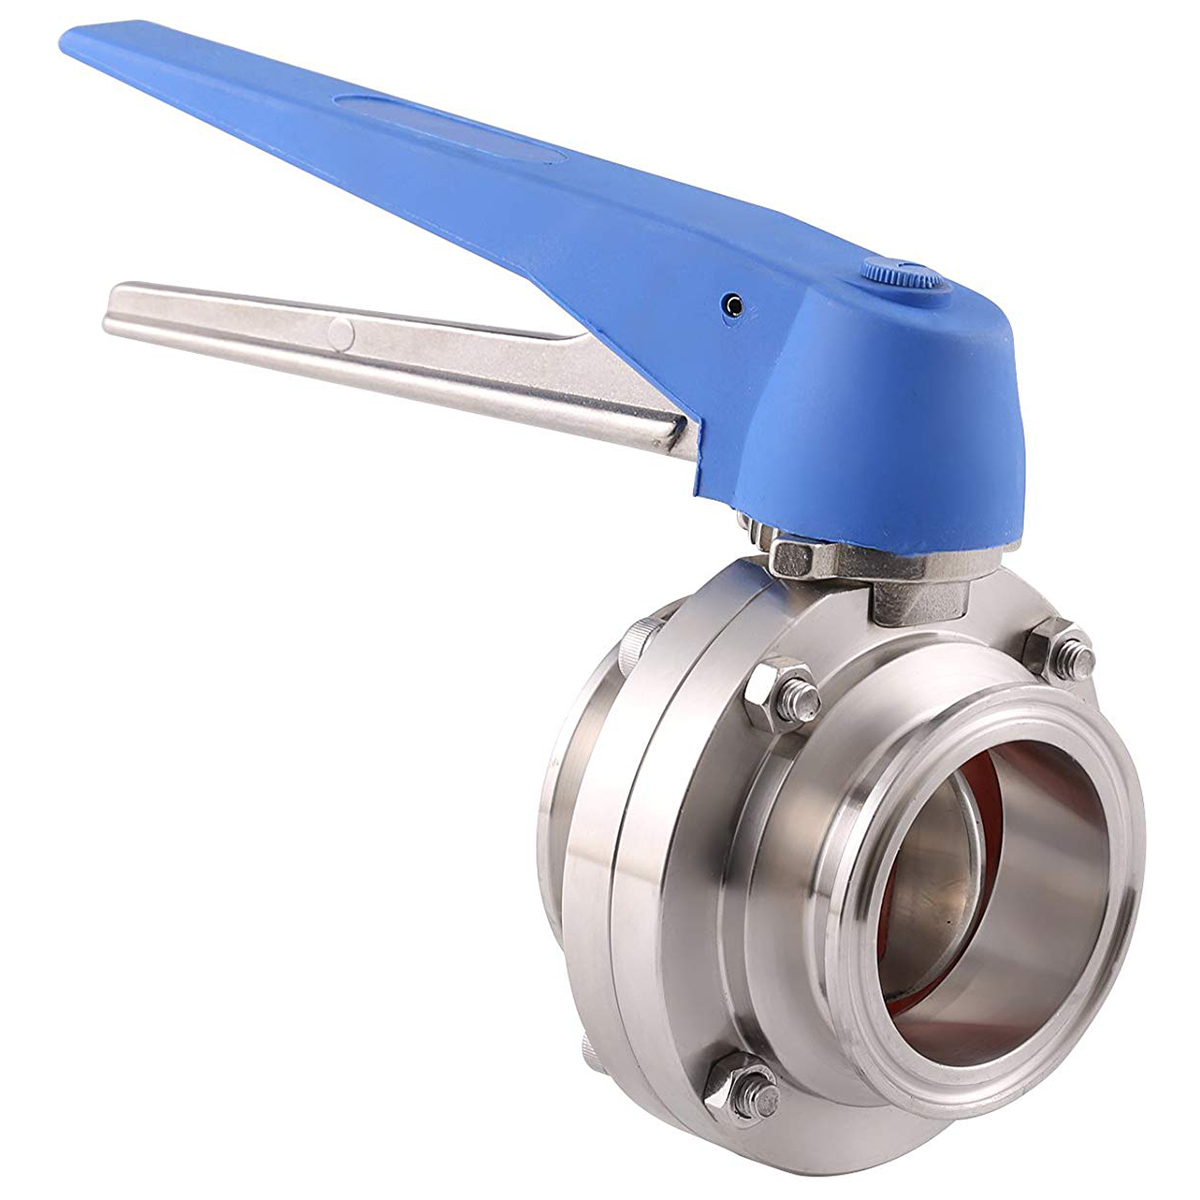 1-1/2 inch 38mm SS304 Stainless Steel Sanitary 1.5 inch Tri Clamp Butterfly Valve Squeeze Trigger for Homebrew Dairy Product